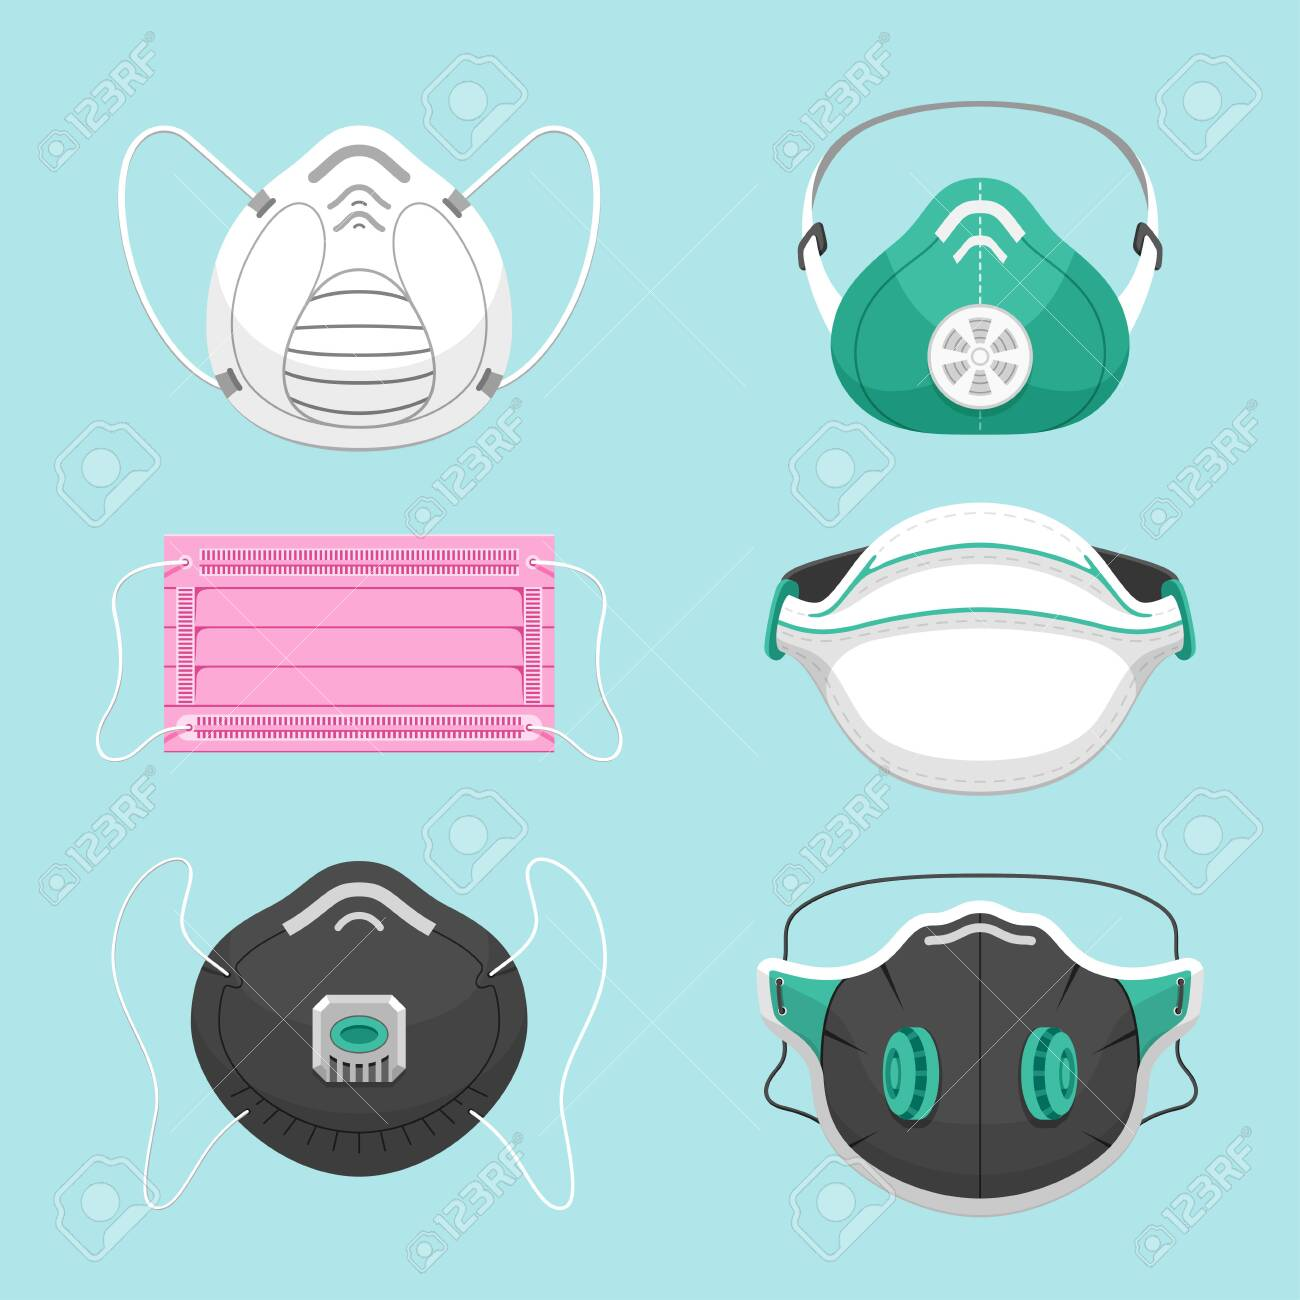 Protective medical masks flat vector illustrations set. Various respirators for health care isolated on blue background. Air pollution, environment contamination, disease prevention symbols pack - 132946091